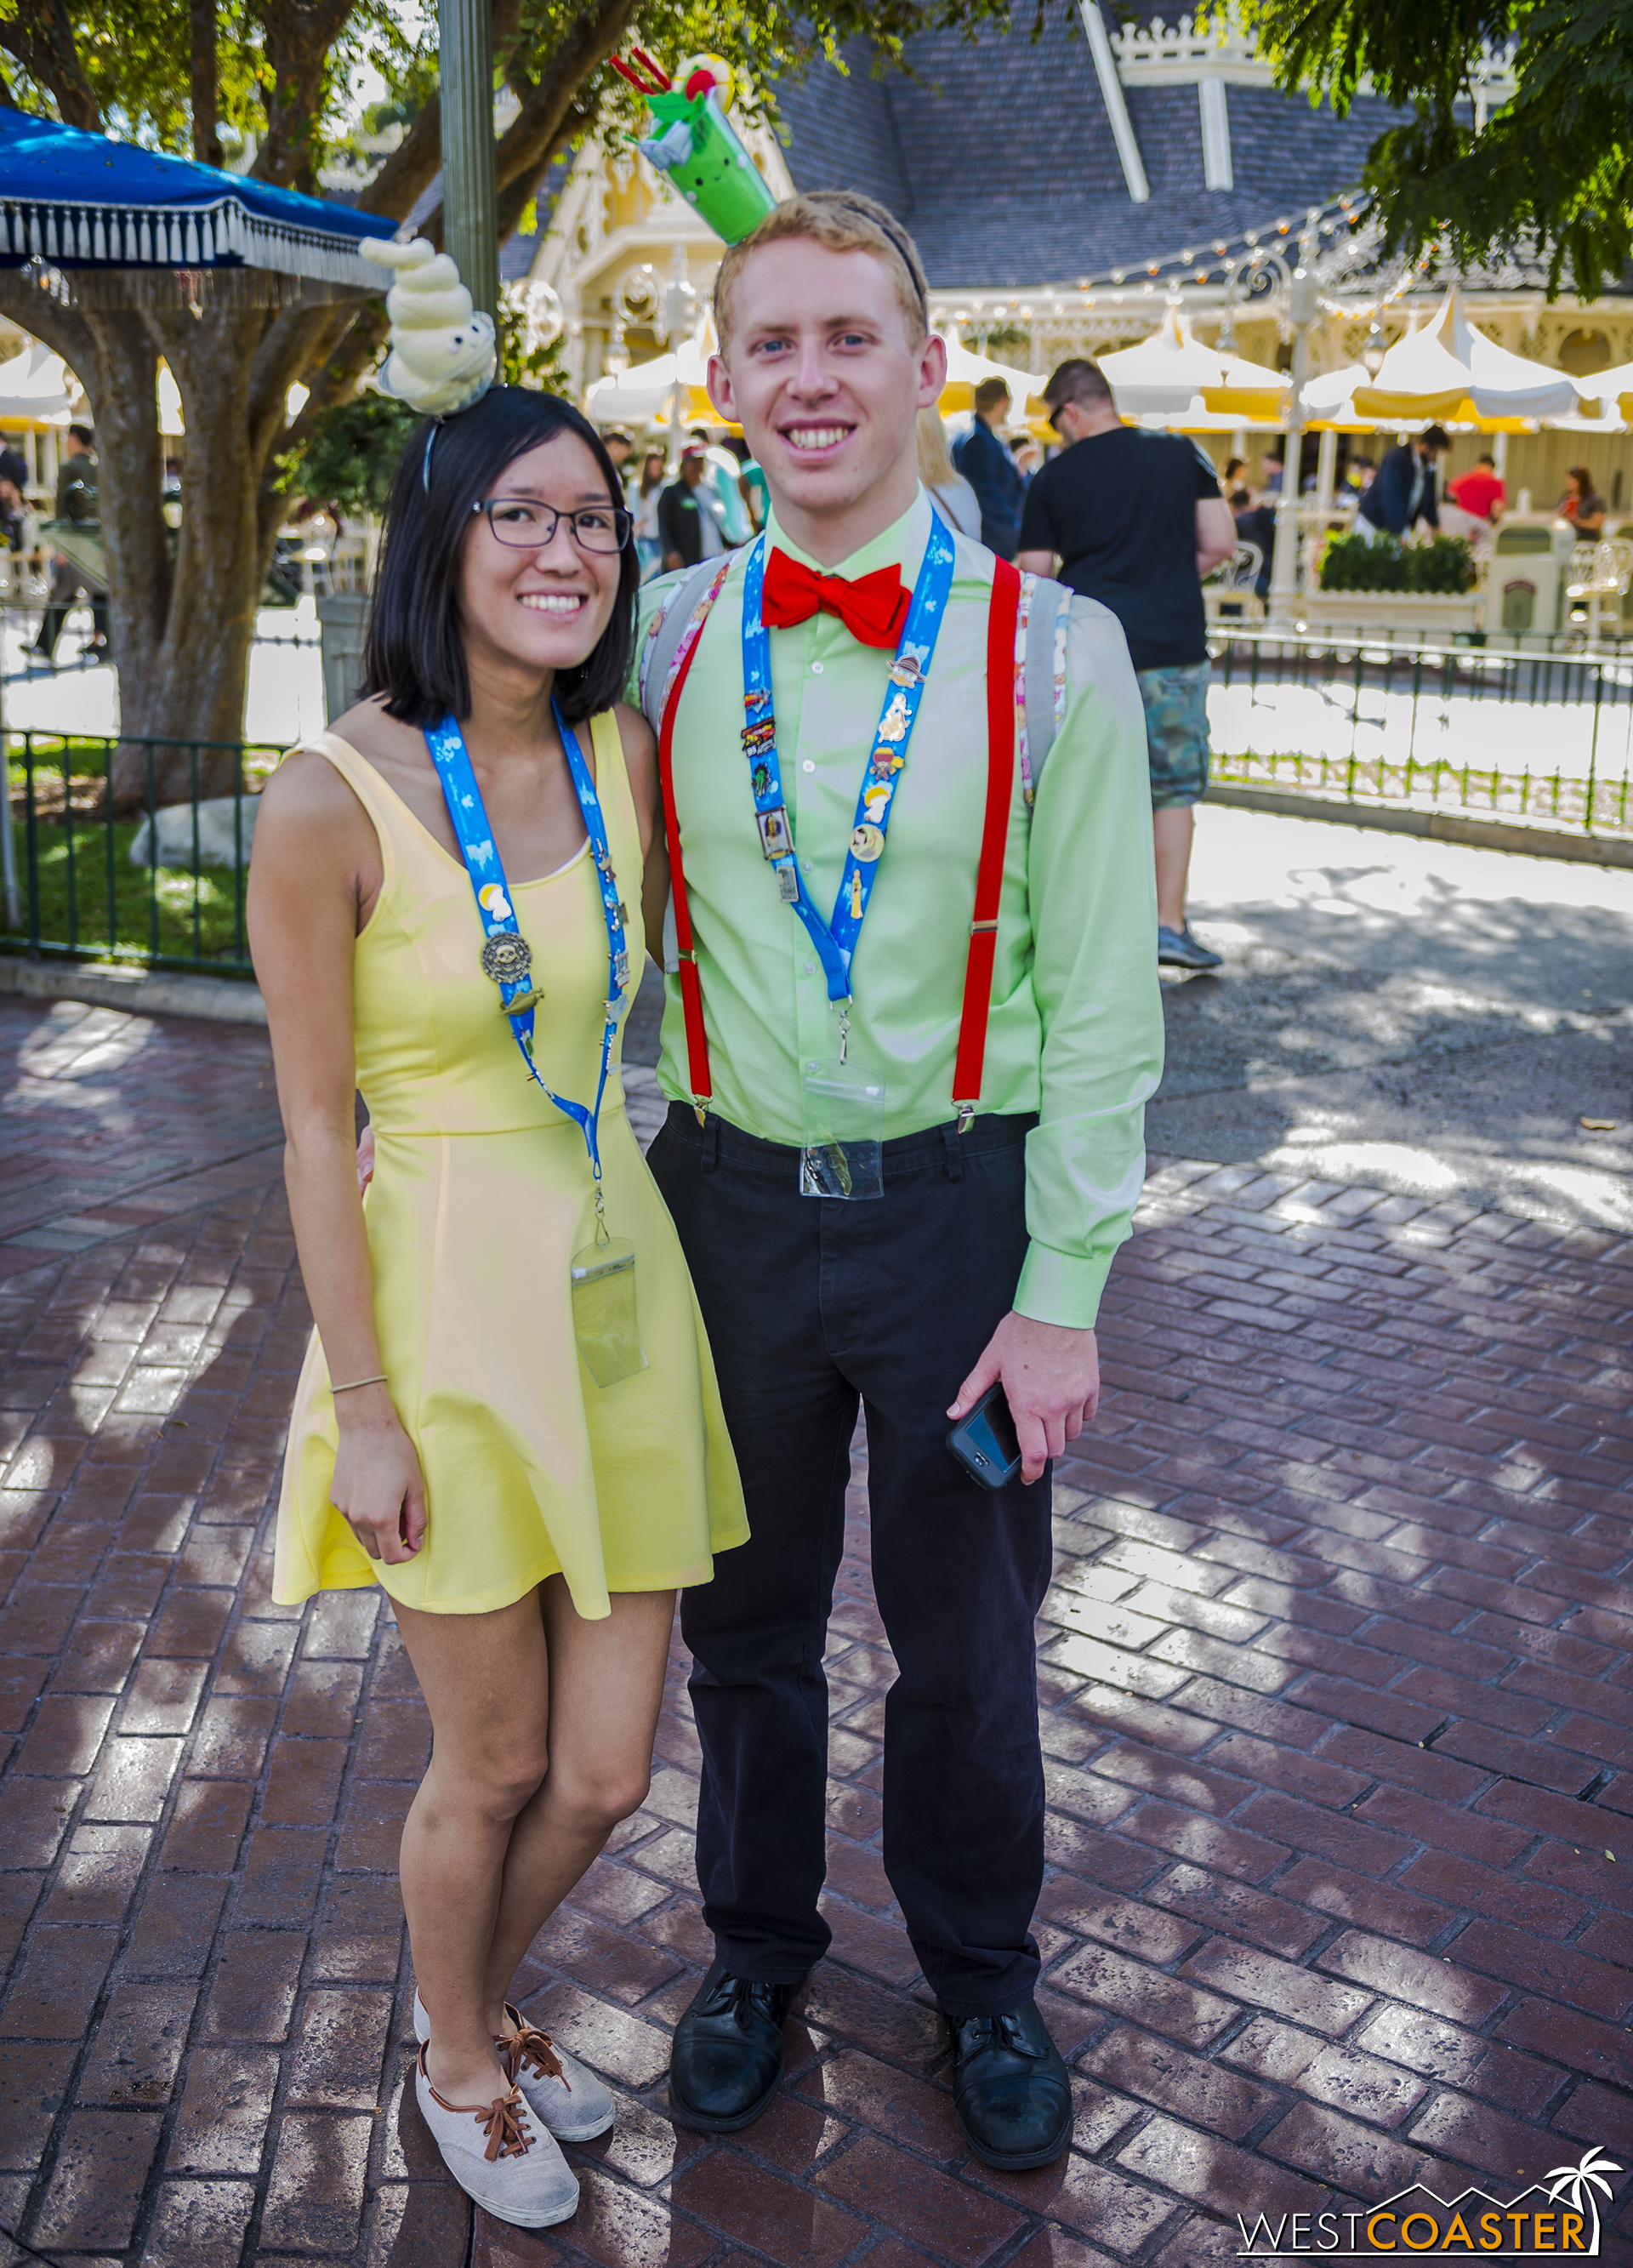 This couple Disney Bounded as the Jerrod Mayuyama Kingdom of Cute versions of Dole Whip and Mint Julep!